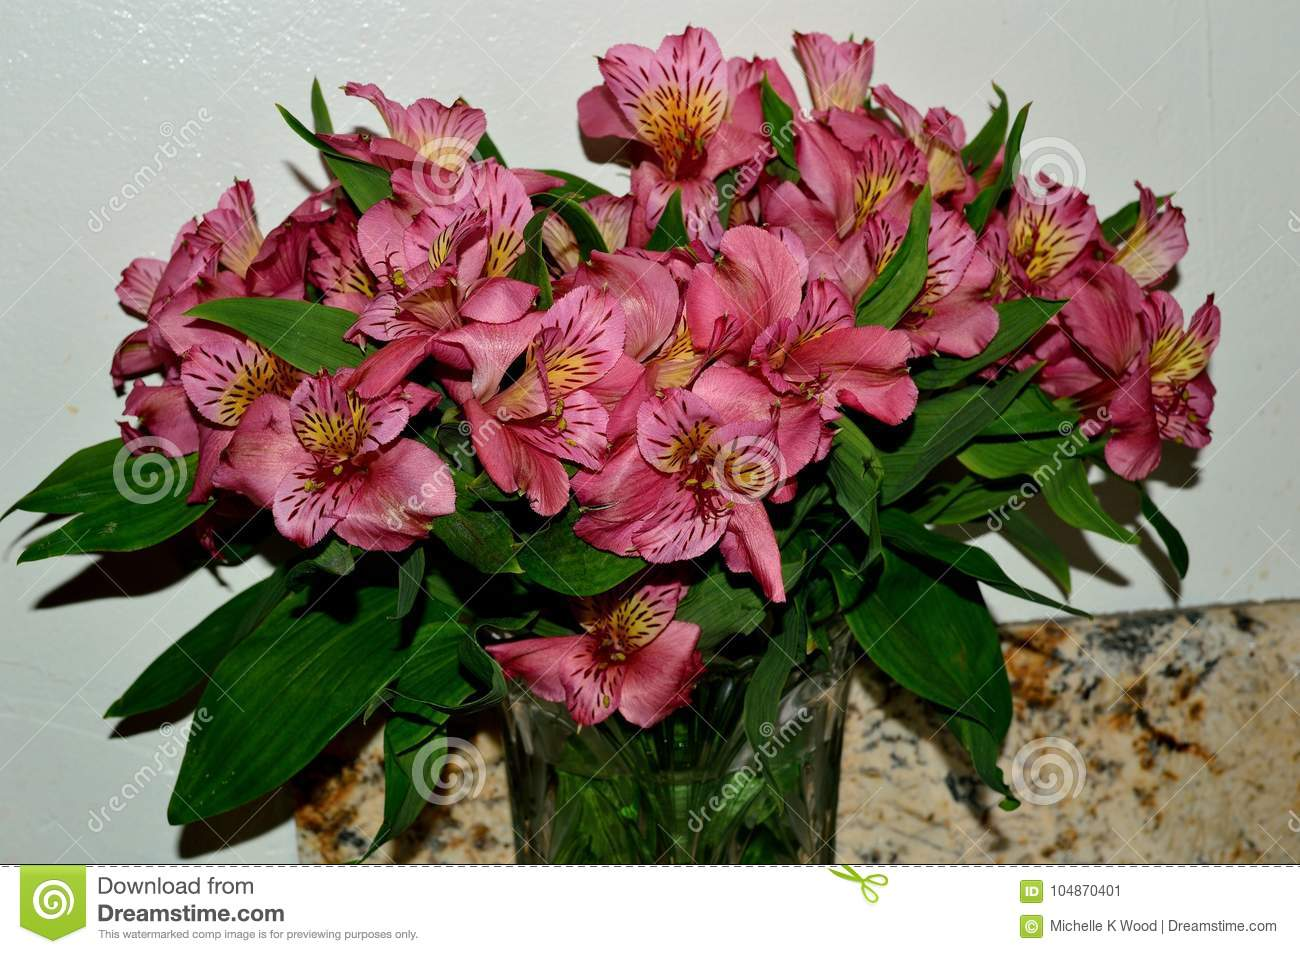 Bouquet of Pink Day Lily Blossoms